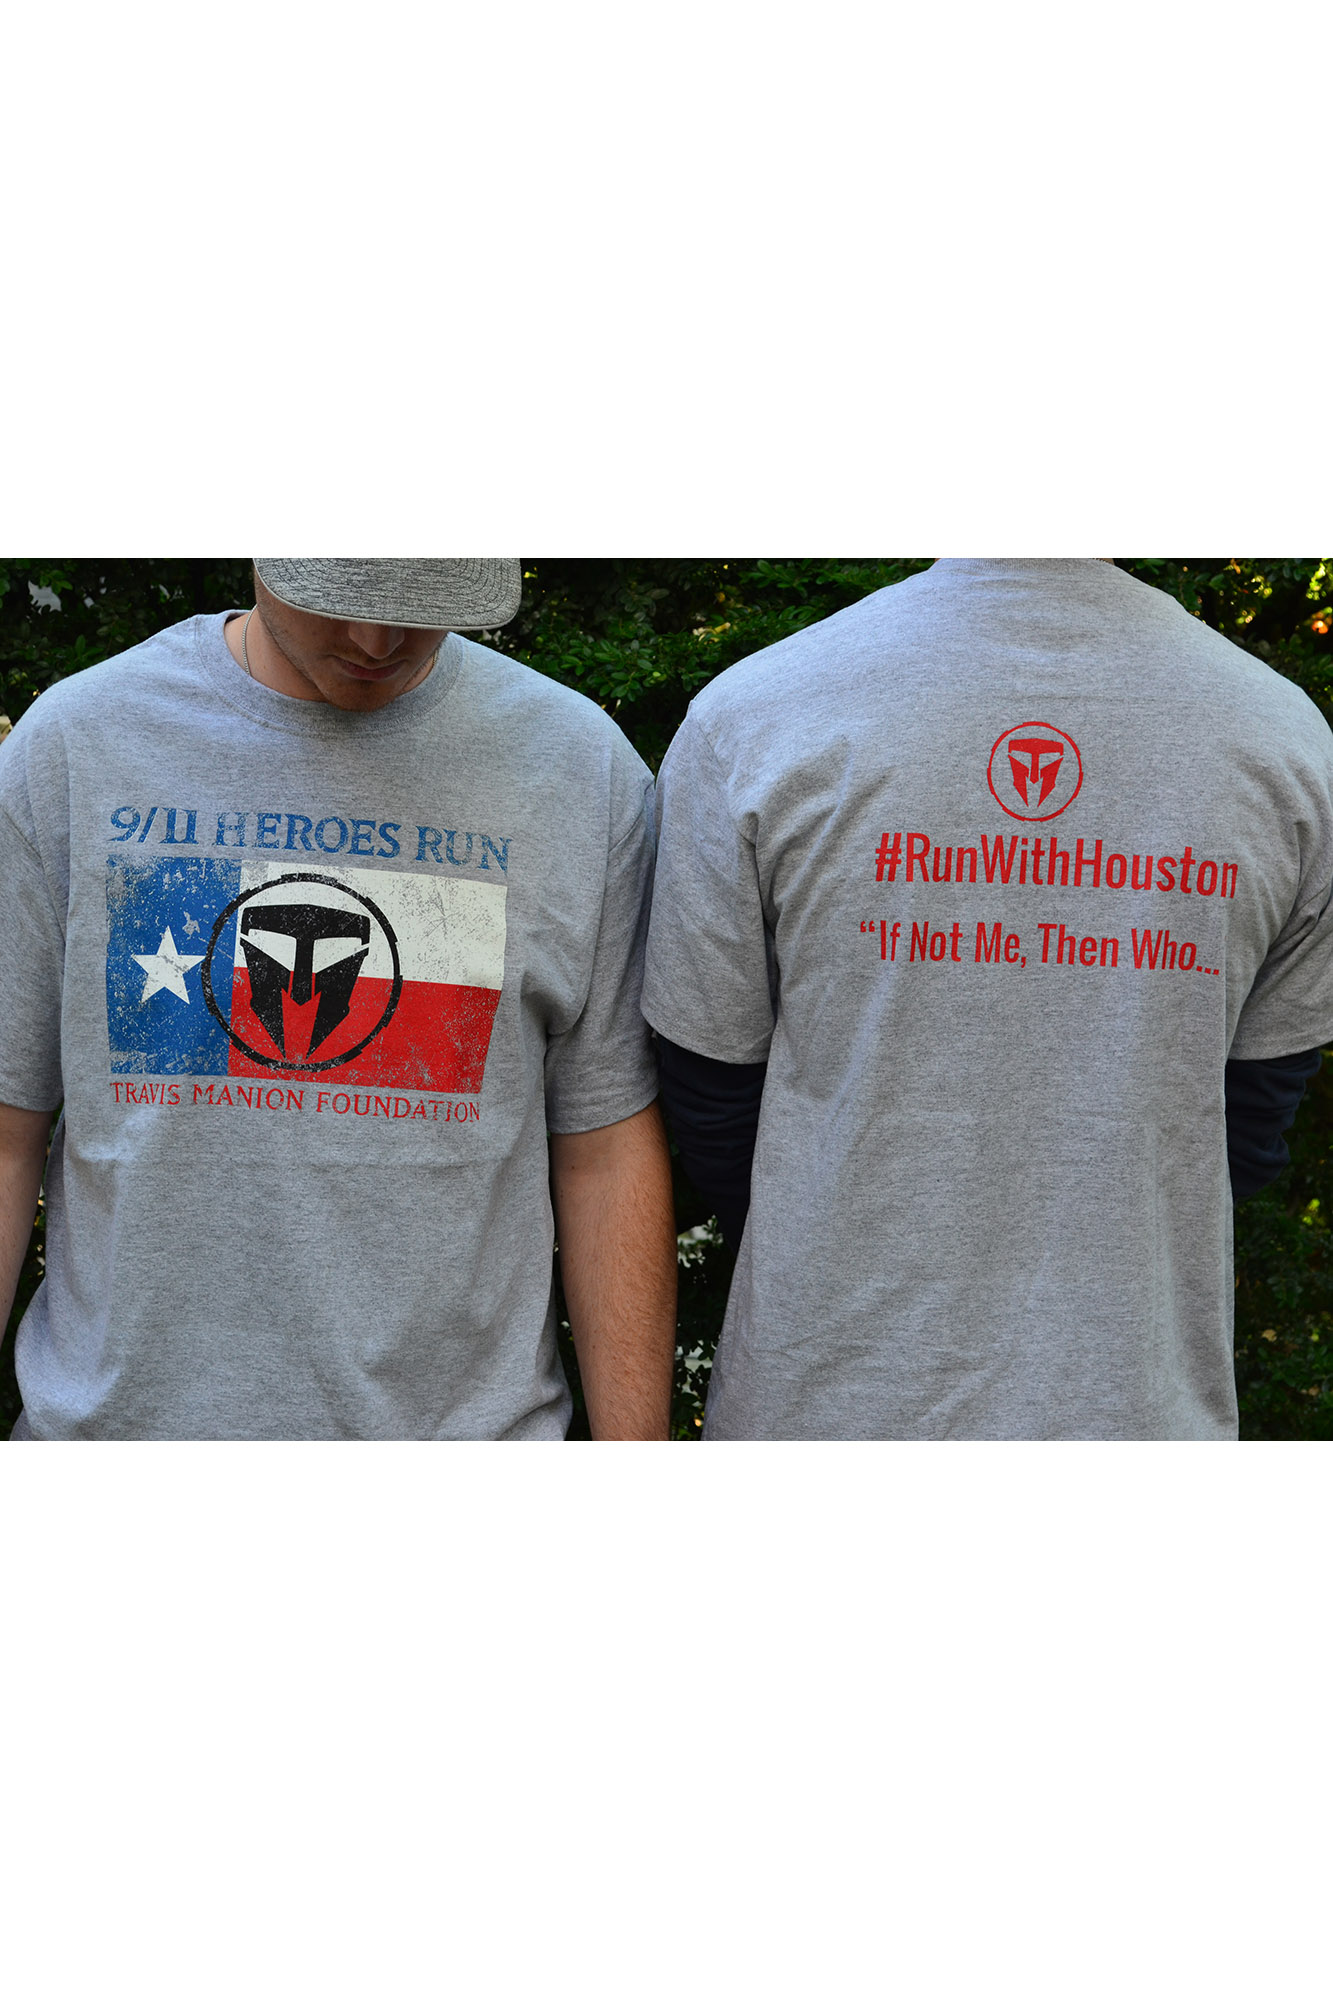 Travis Manion Foundation Run with Houston Flood Relief Tee